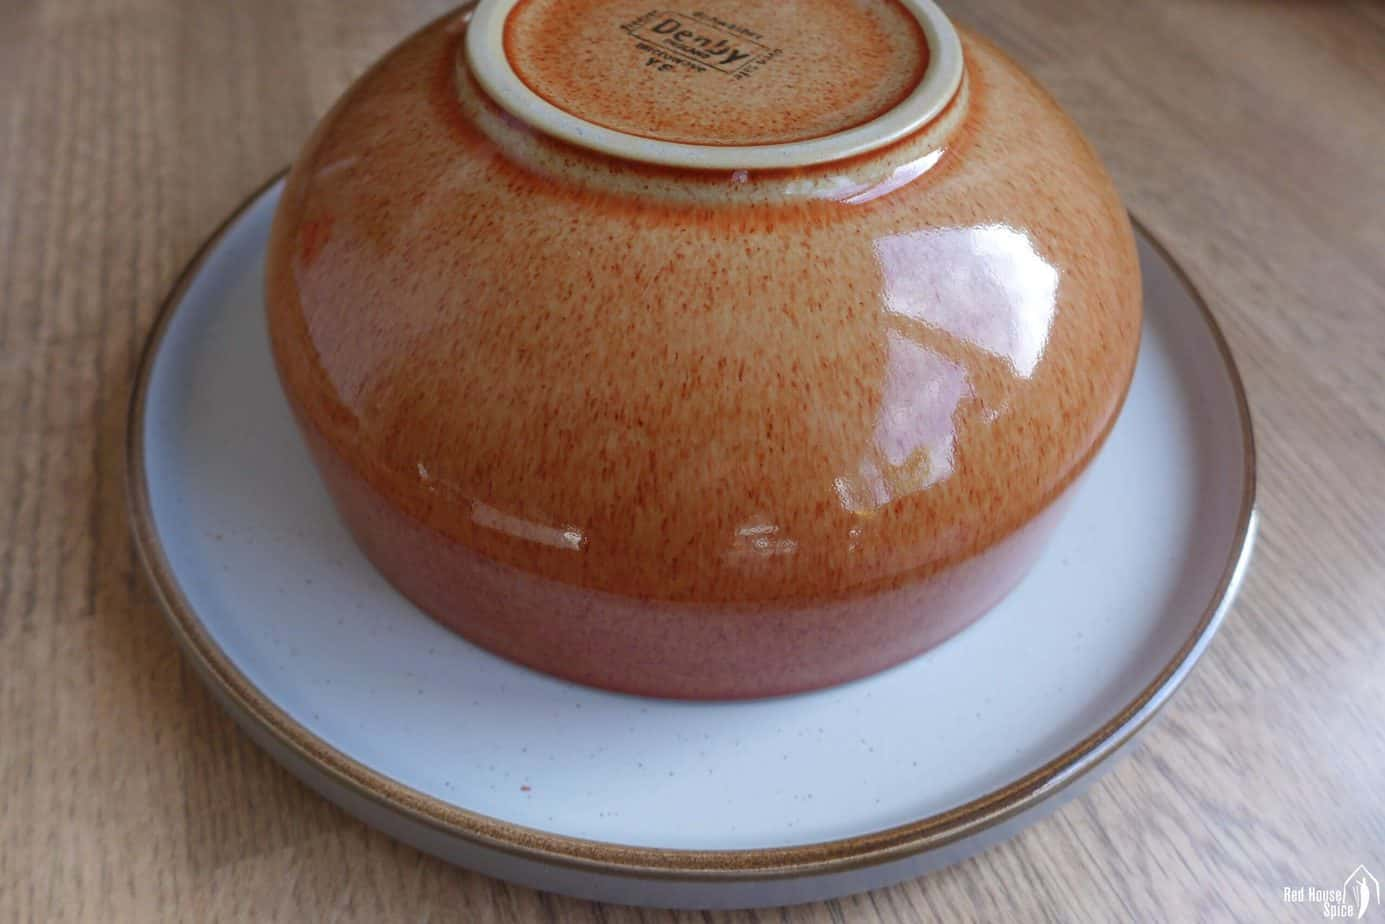 A bowl over a plate